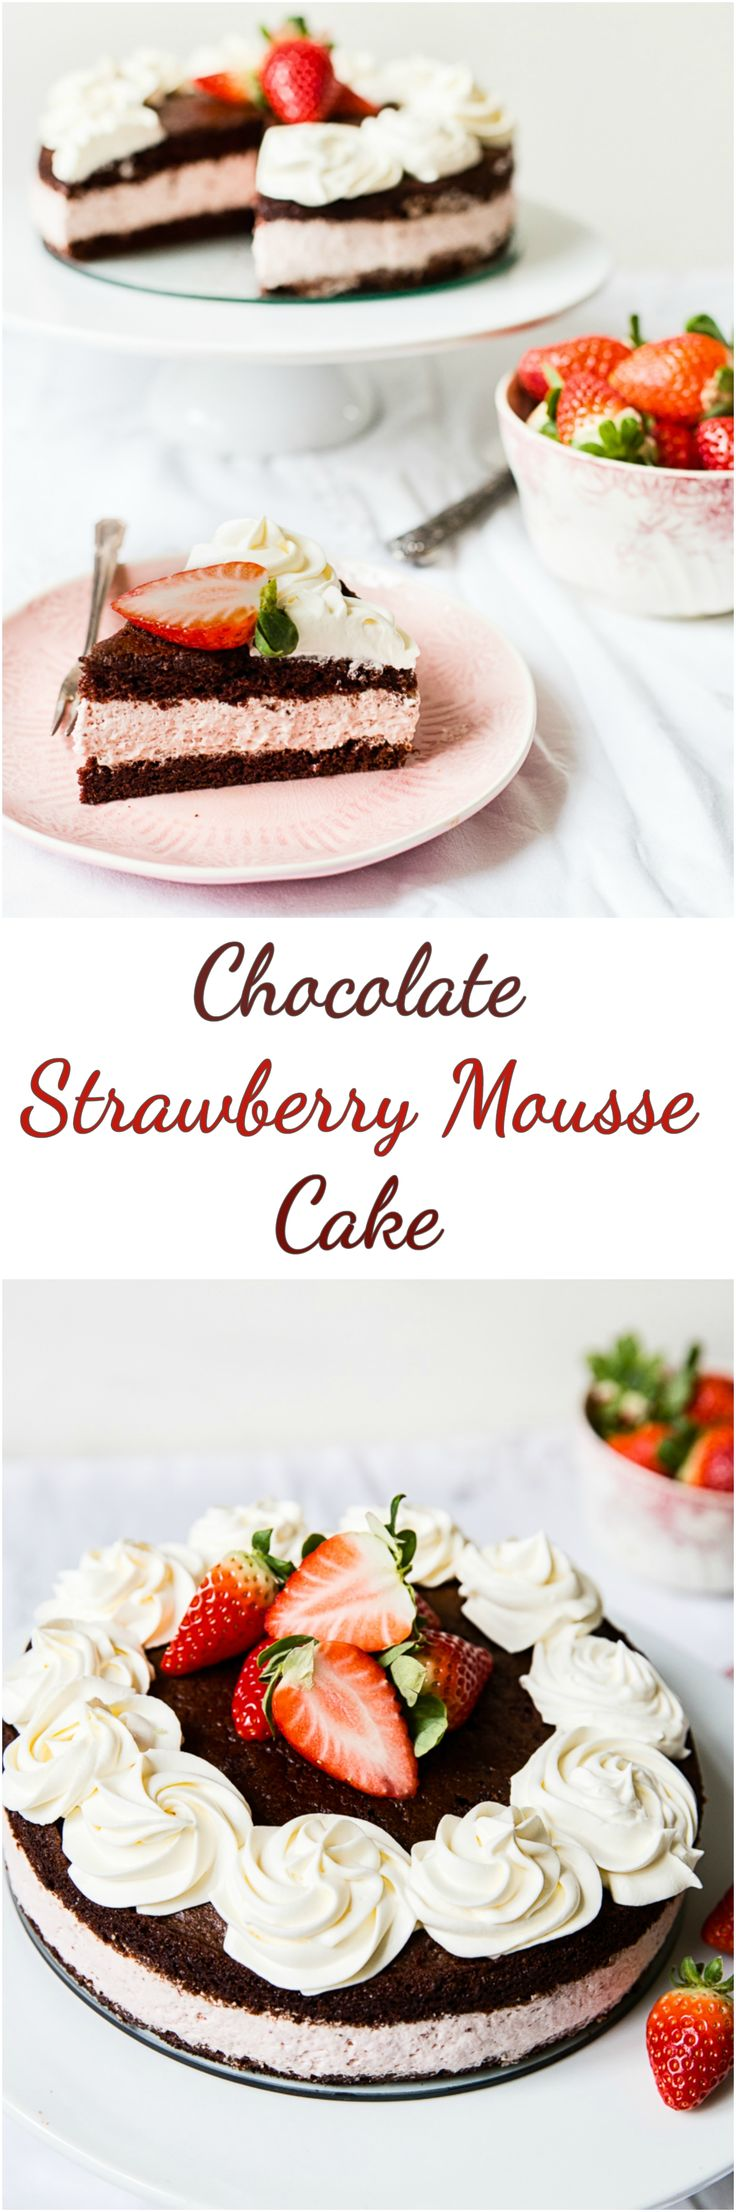 This chocolate strawberry mousse cake might look like it came from a patisserie shop but is easy to make at home and tastes divine! Dark chocolate sponge layers sandwiched together with a light and creamy strawberry mousse. #chocolatecake #strawberrymousse